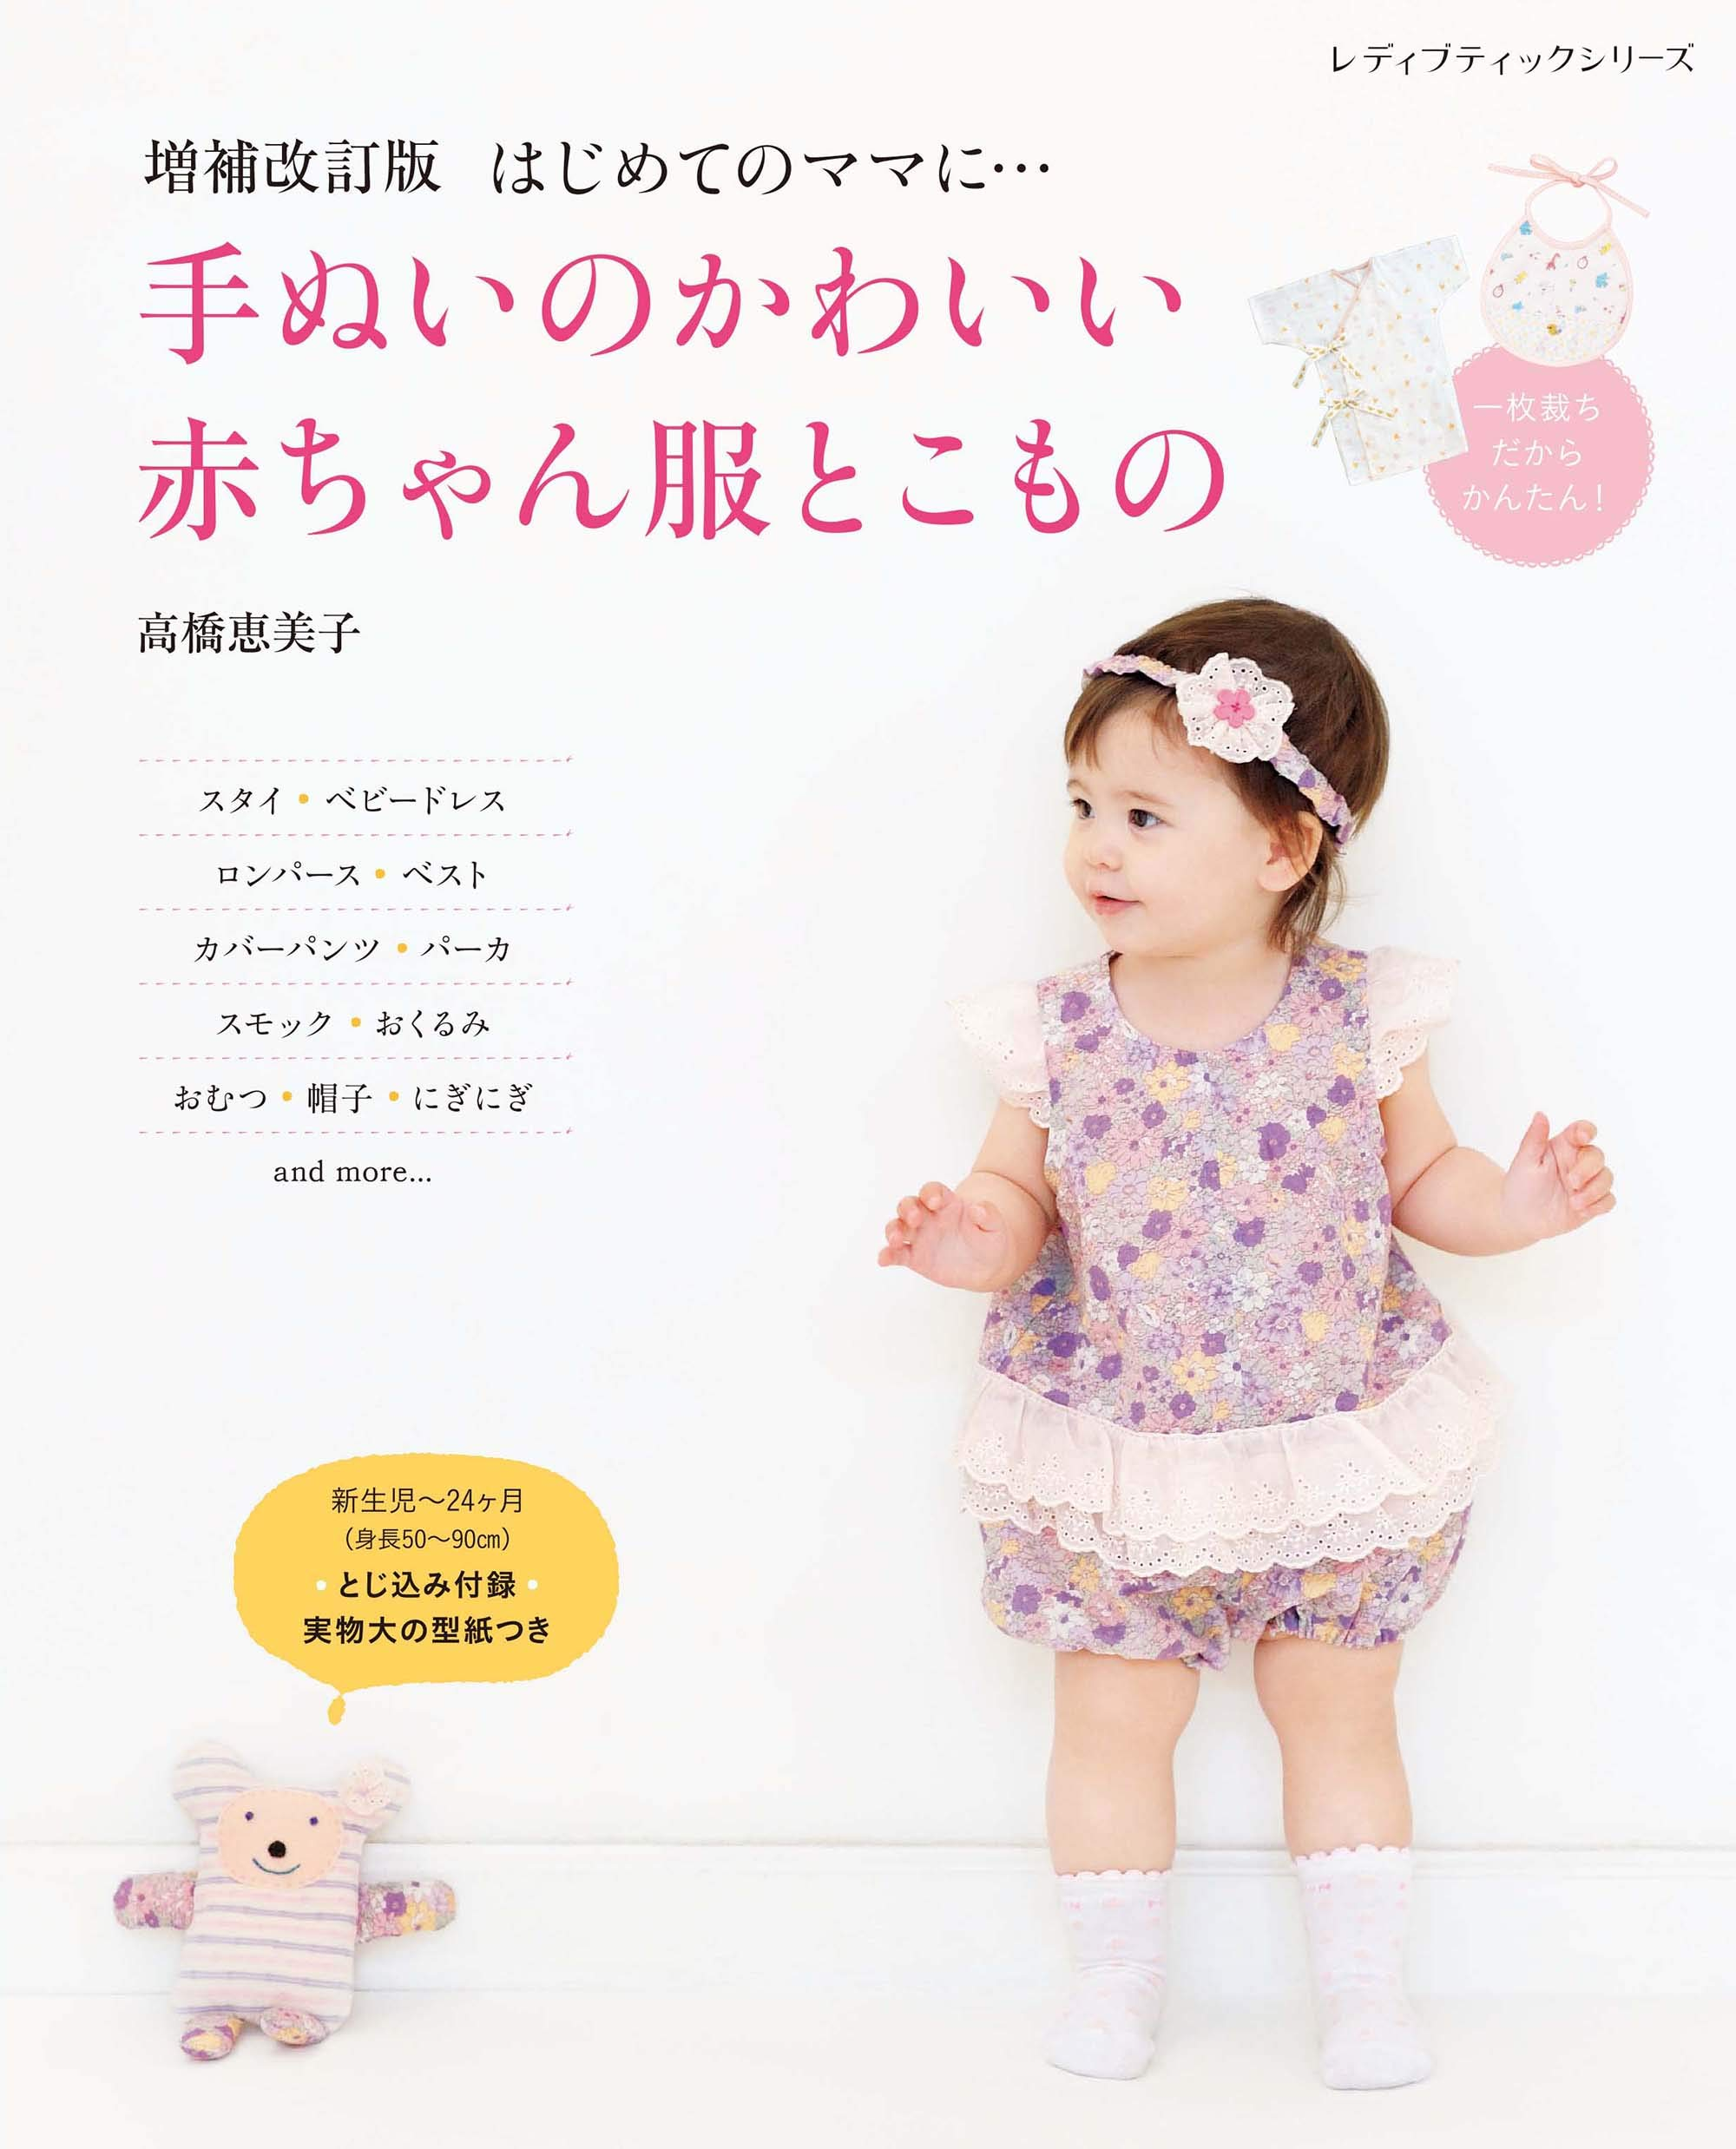 Little baby clothes and stuffs for handicrafts